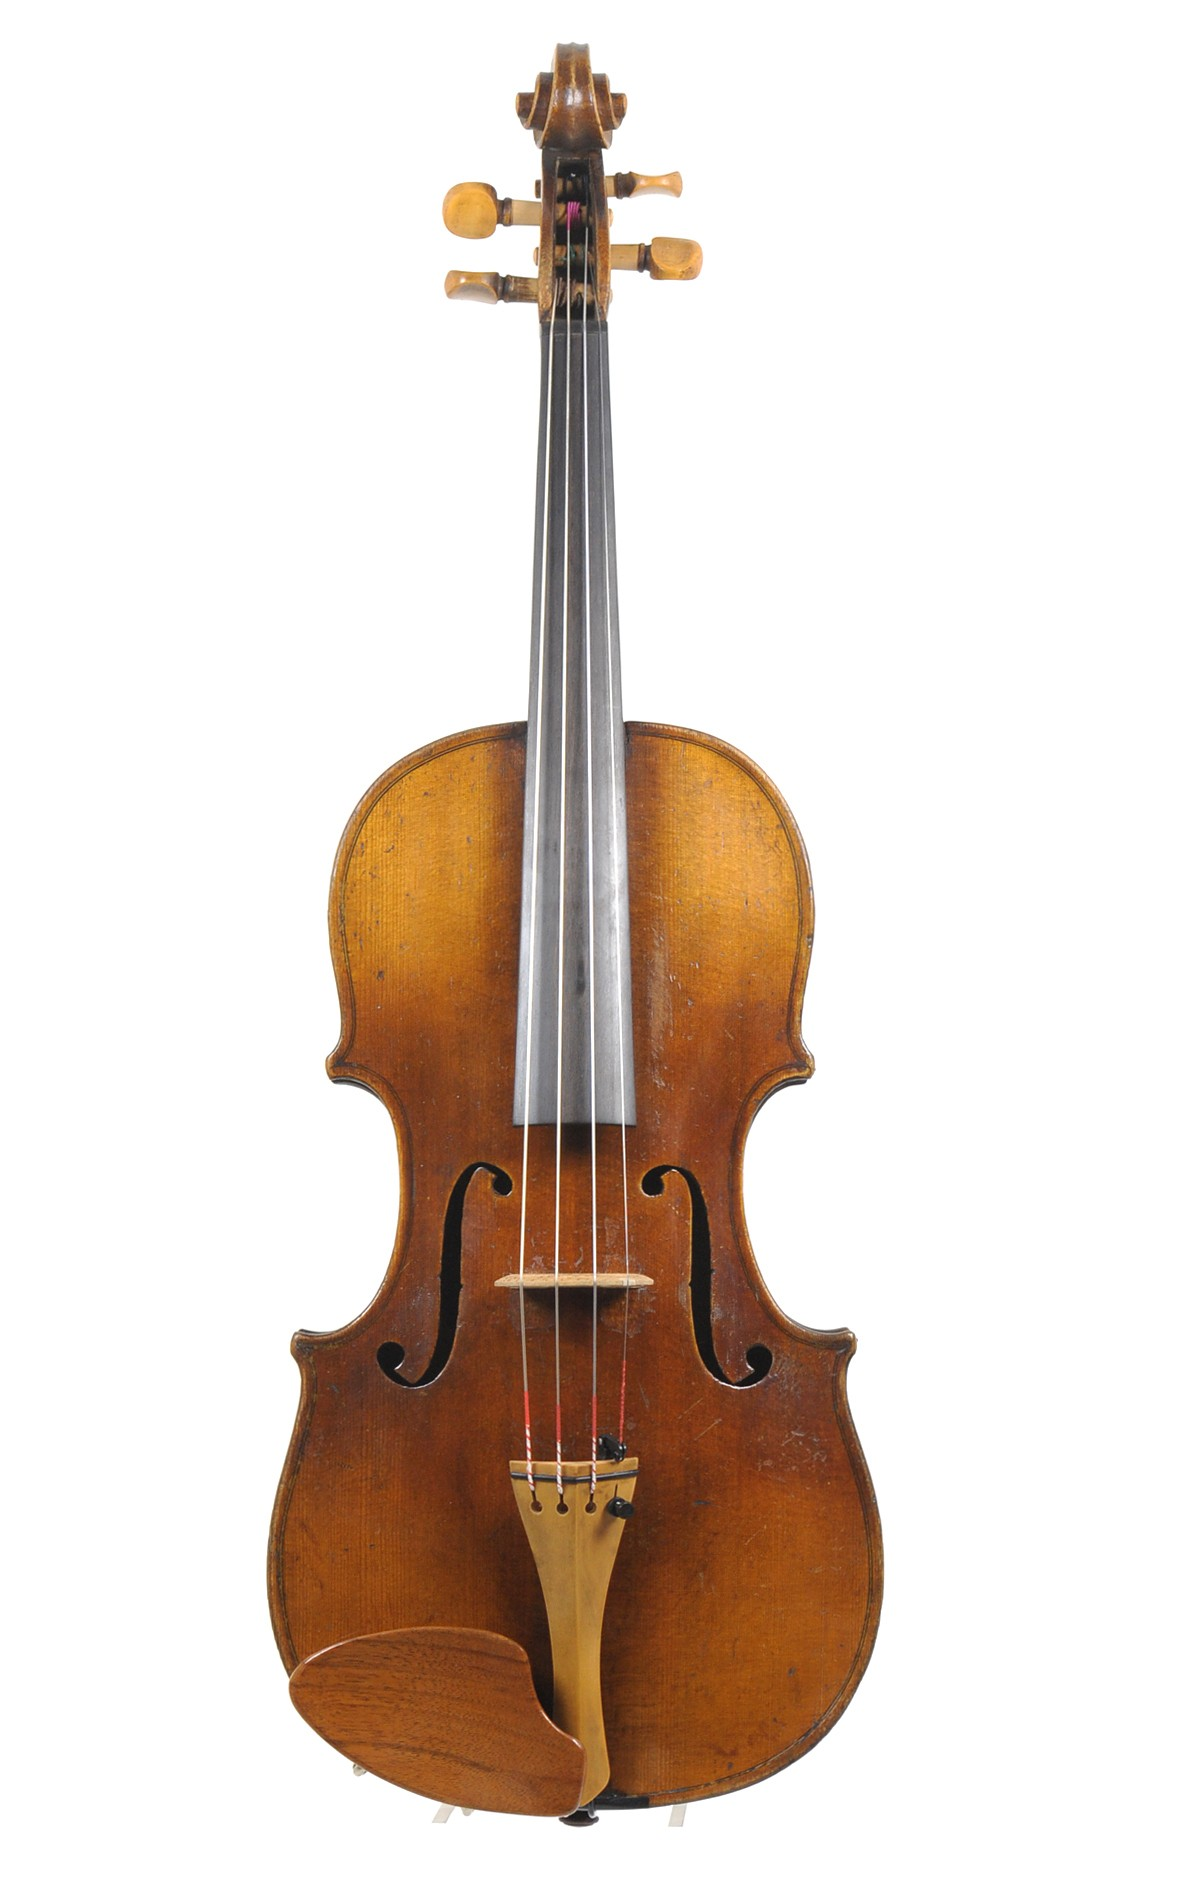 19th century Klingenthal Hopf violin for small handed players - table